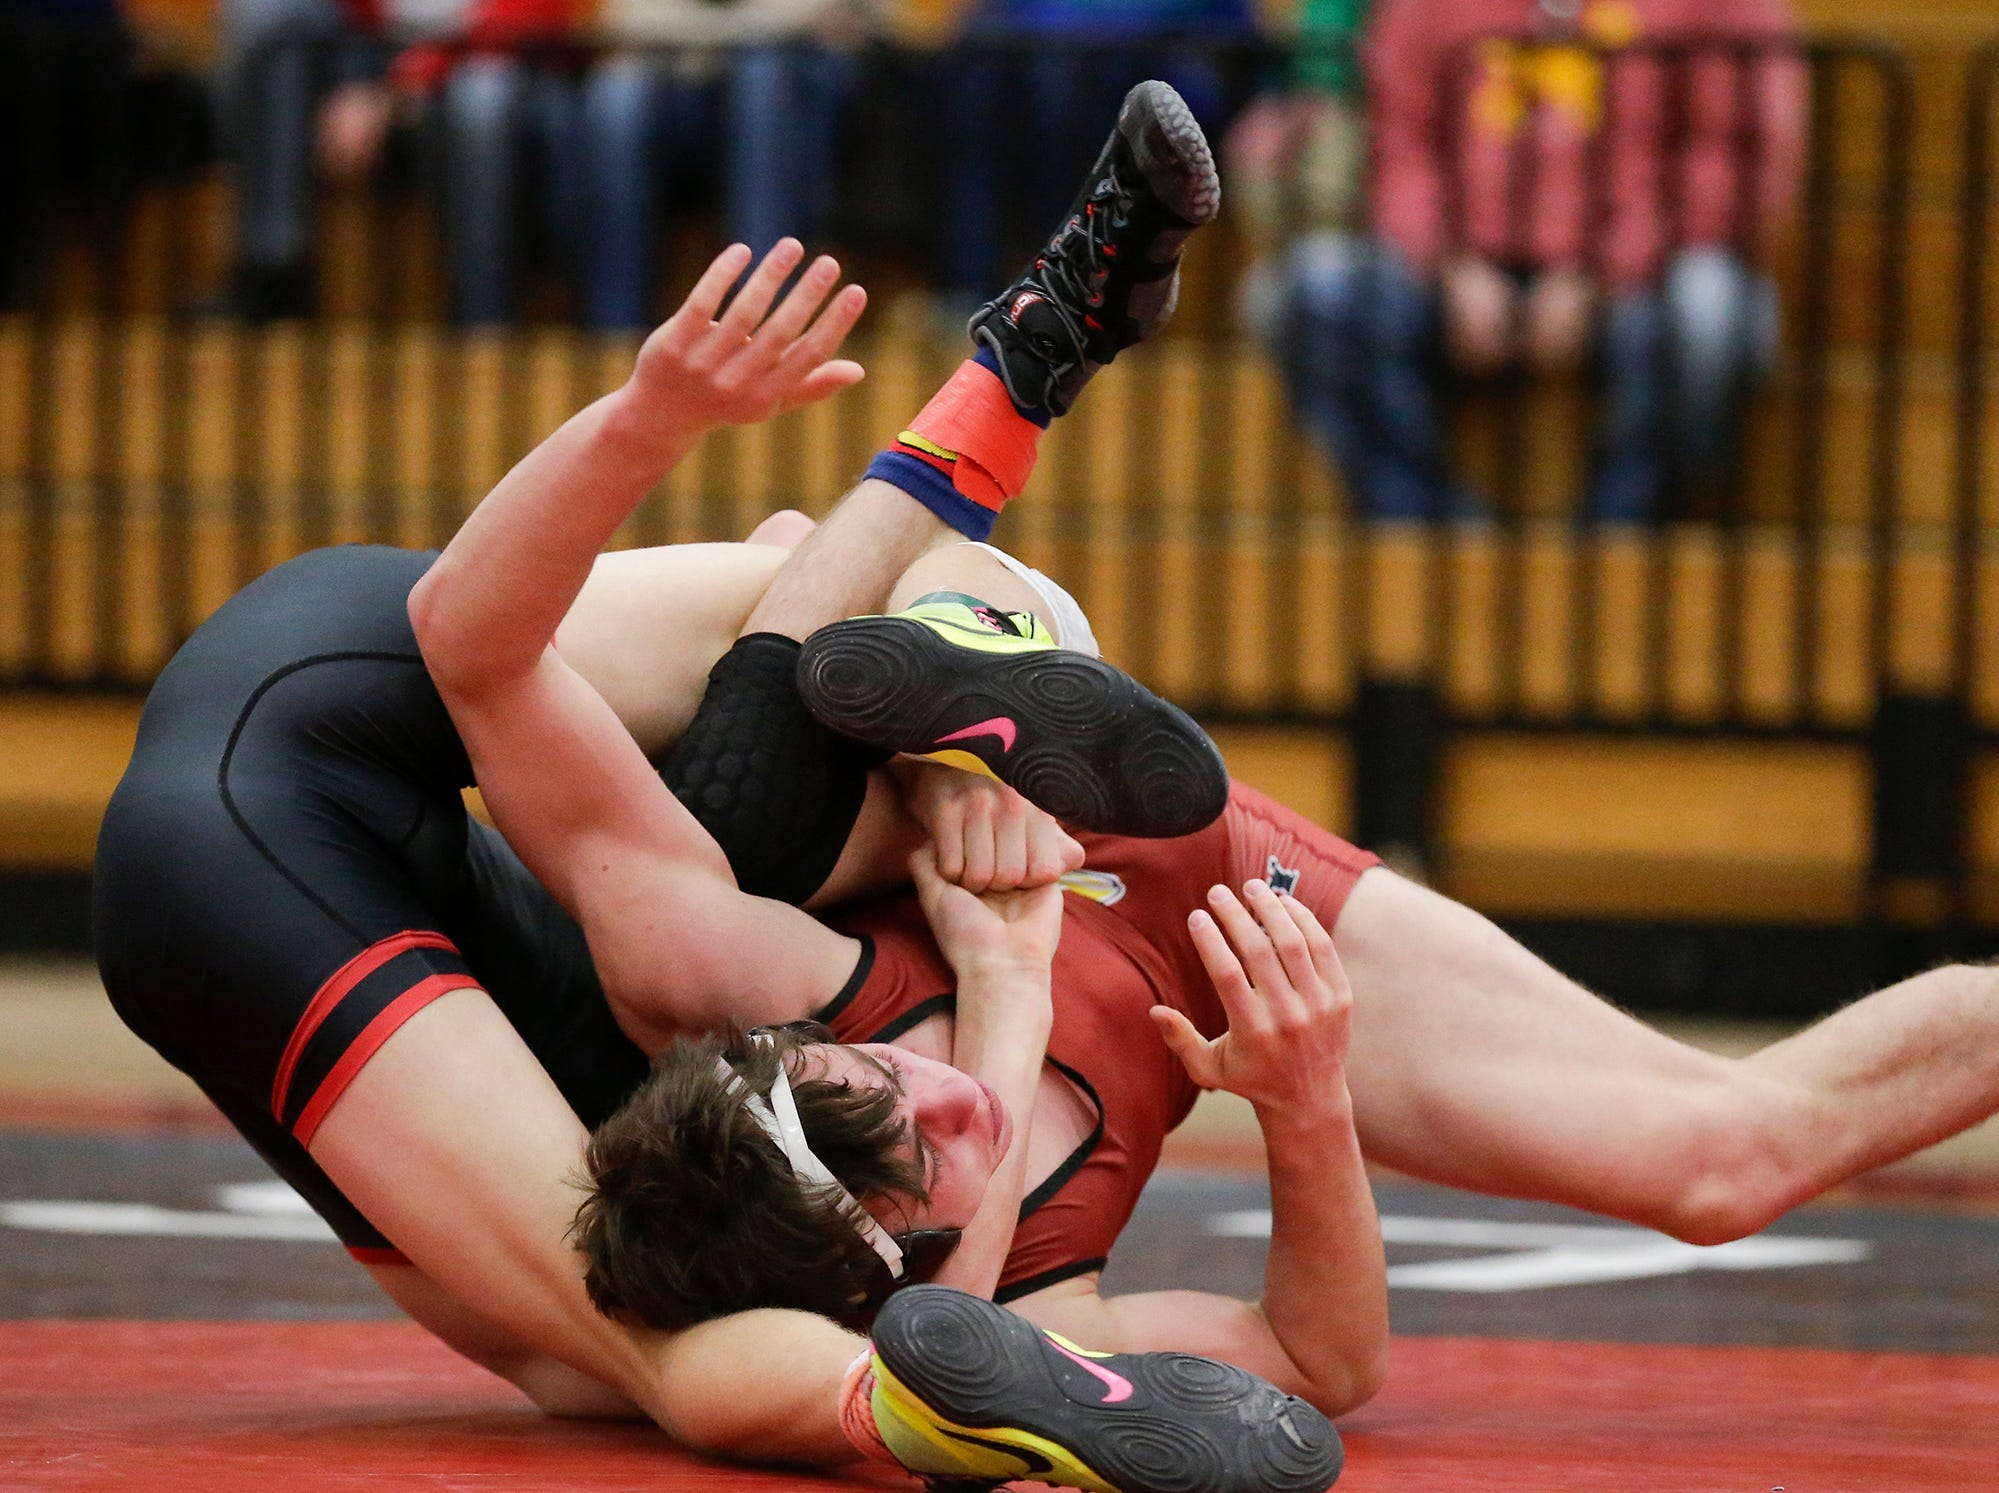 Fond du Lac High School's Logan Naker wrestles Kimberly High School's Tucker Smith in a 145 pound match during the Fox Valley Association wrestling championship meet held in Fond du Lac, Saturday, February 2, 2019. Smith won the meet by a pin. Doug Raflik/USA TODAY NETWORK-Wisconsin